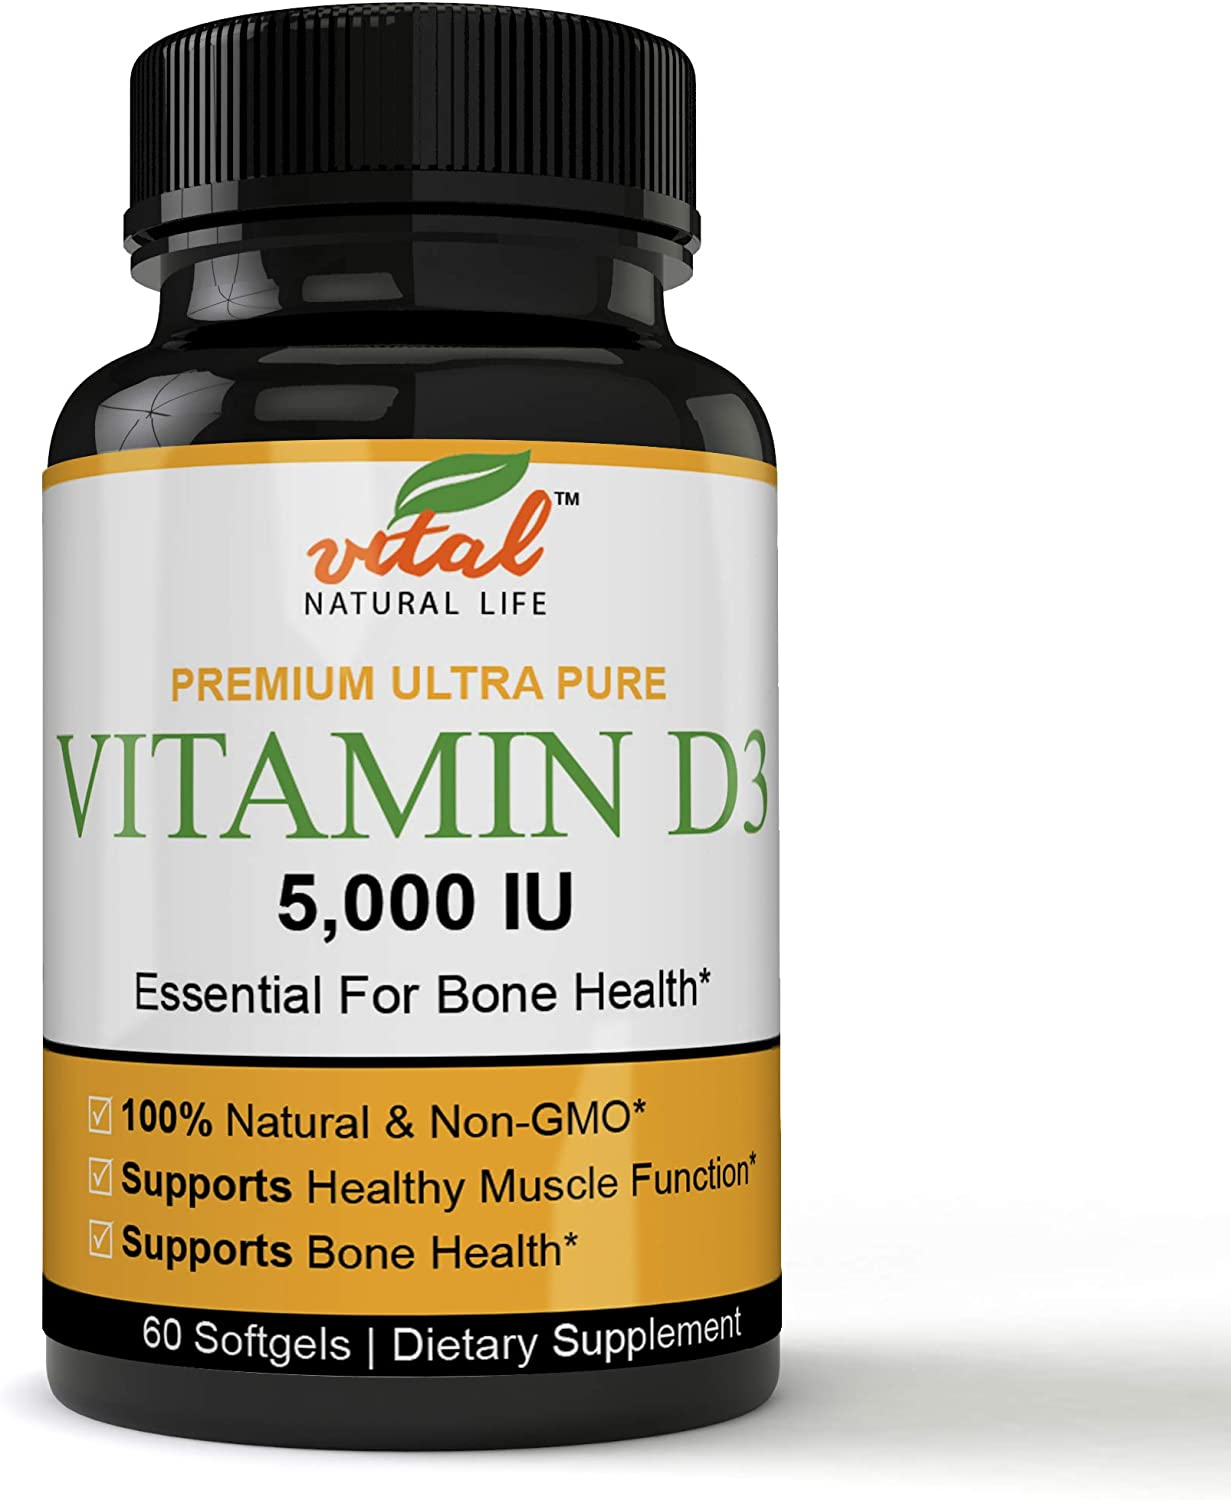 Highly Active Vitamin D3 5000 IU Formulation, Superior Absorption - Certified Organic, 60 Mini Soft-gels per Bottle, Non-GMO, Soy Free, Gluten Free, Supports Immune Function & Healthy Bones + Teeth